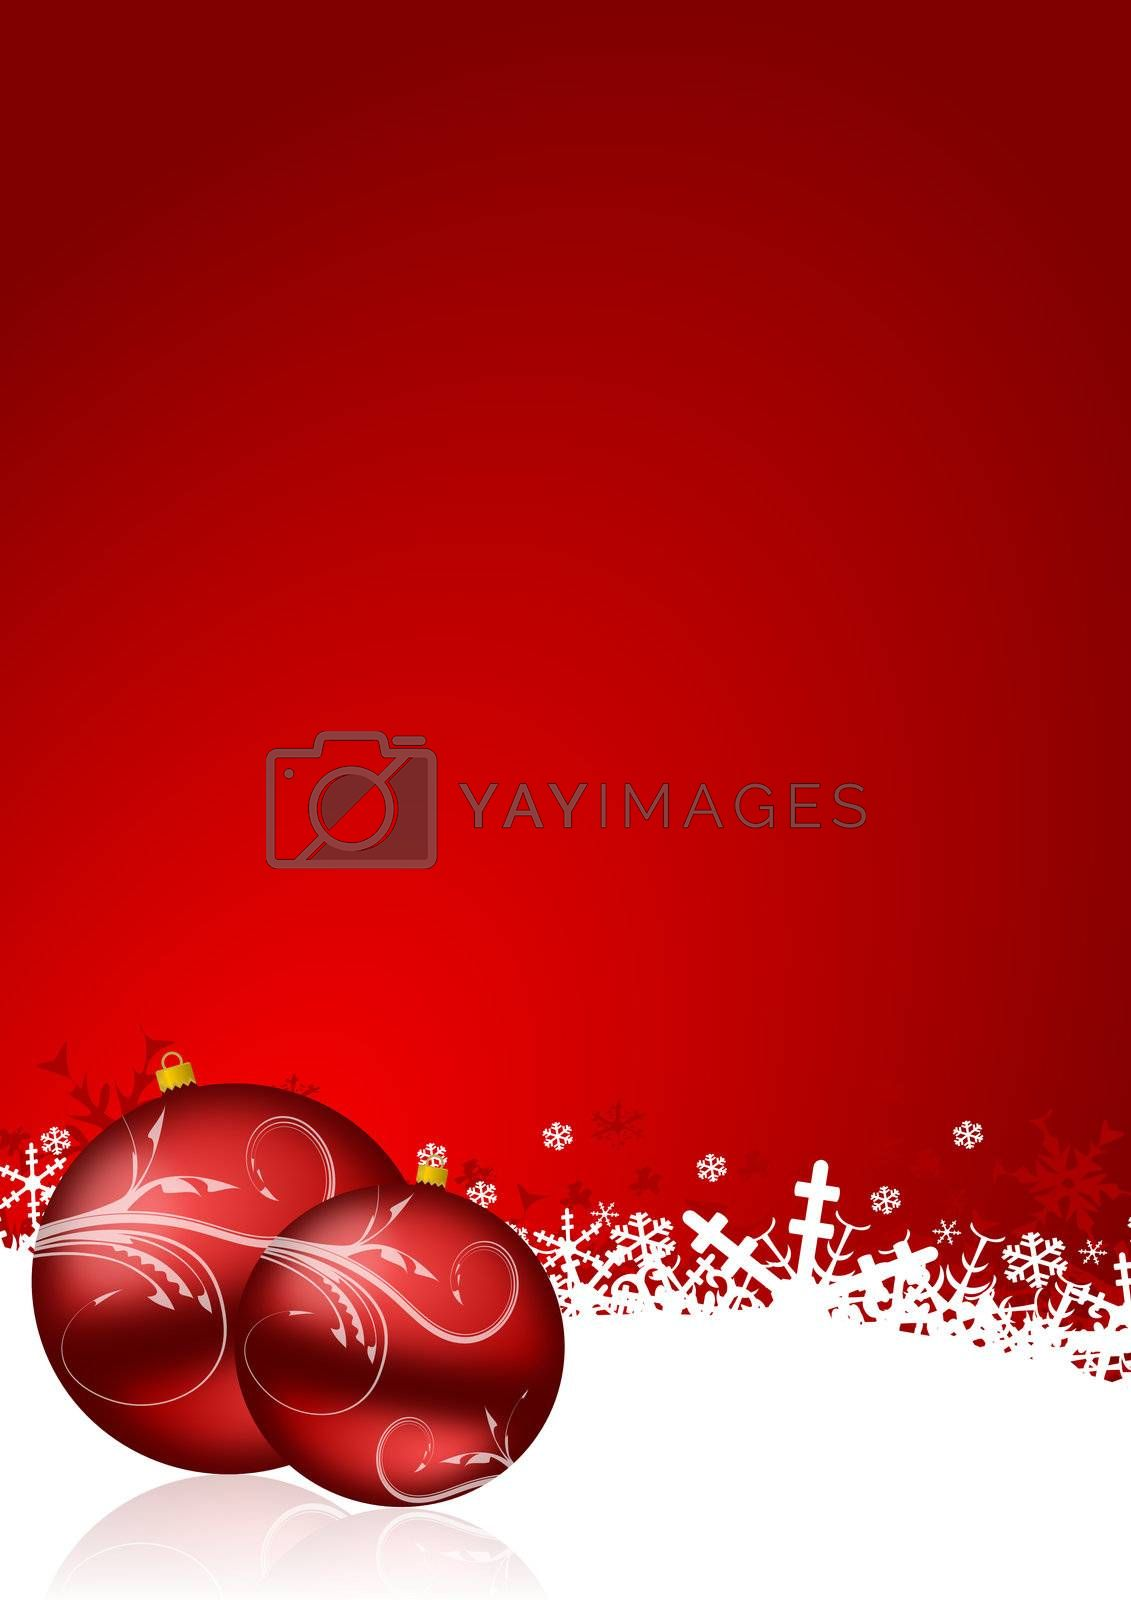 red christmas background with snowflakes and christmas balls